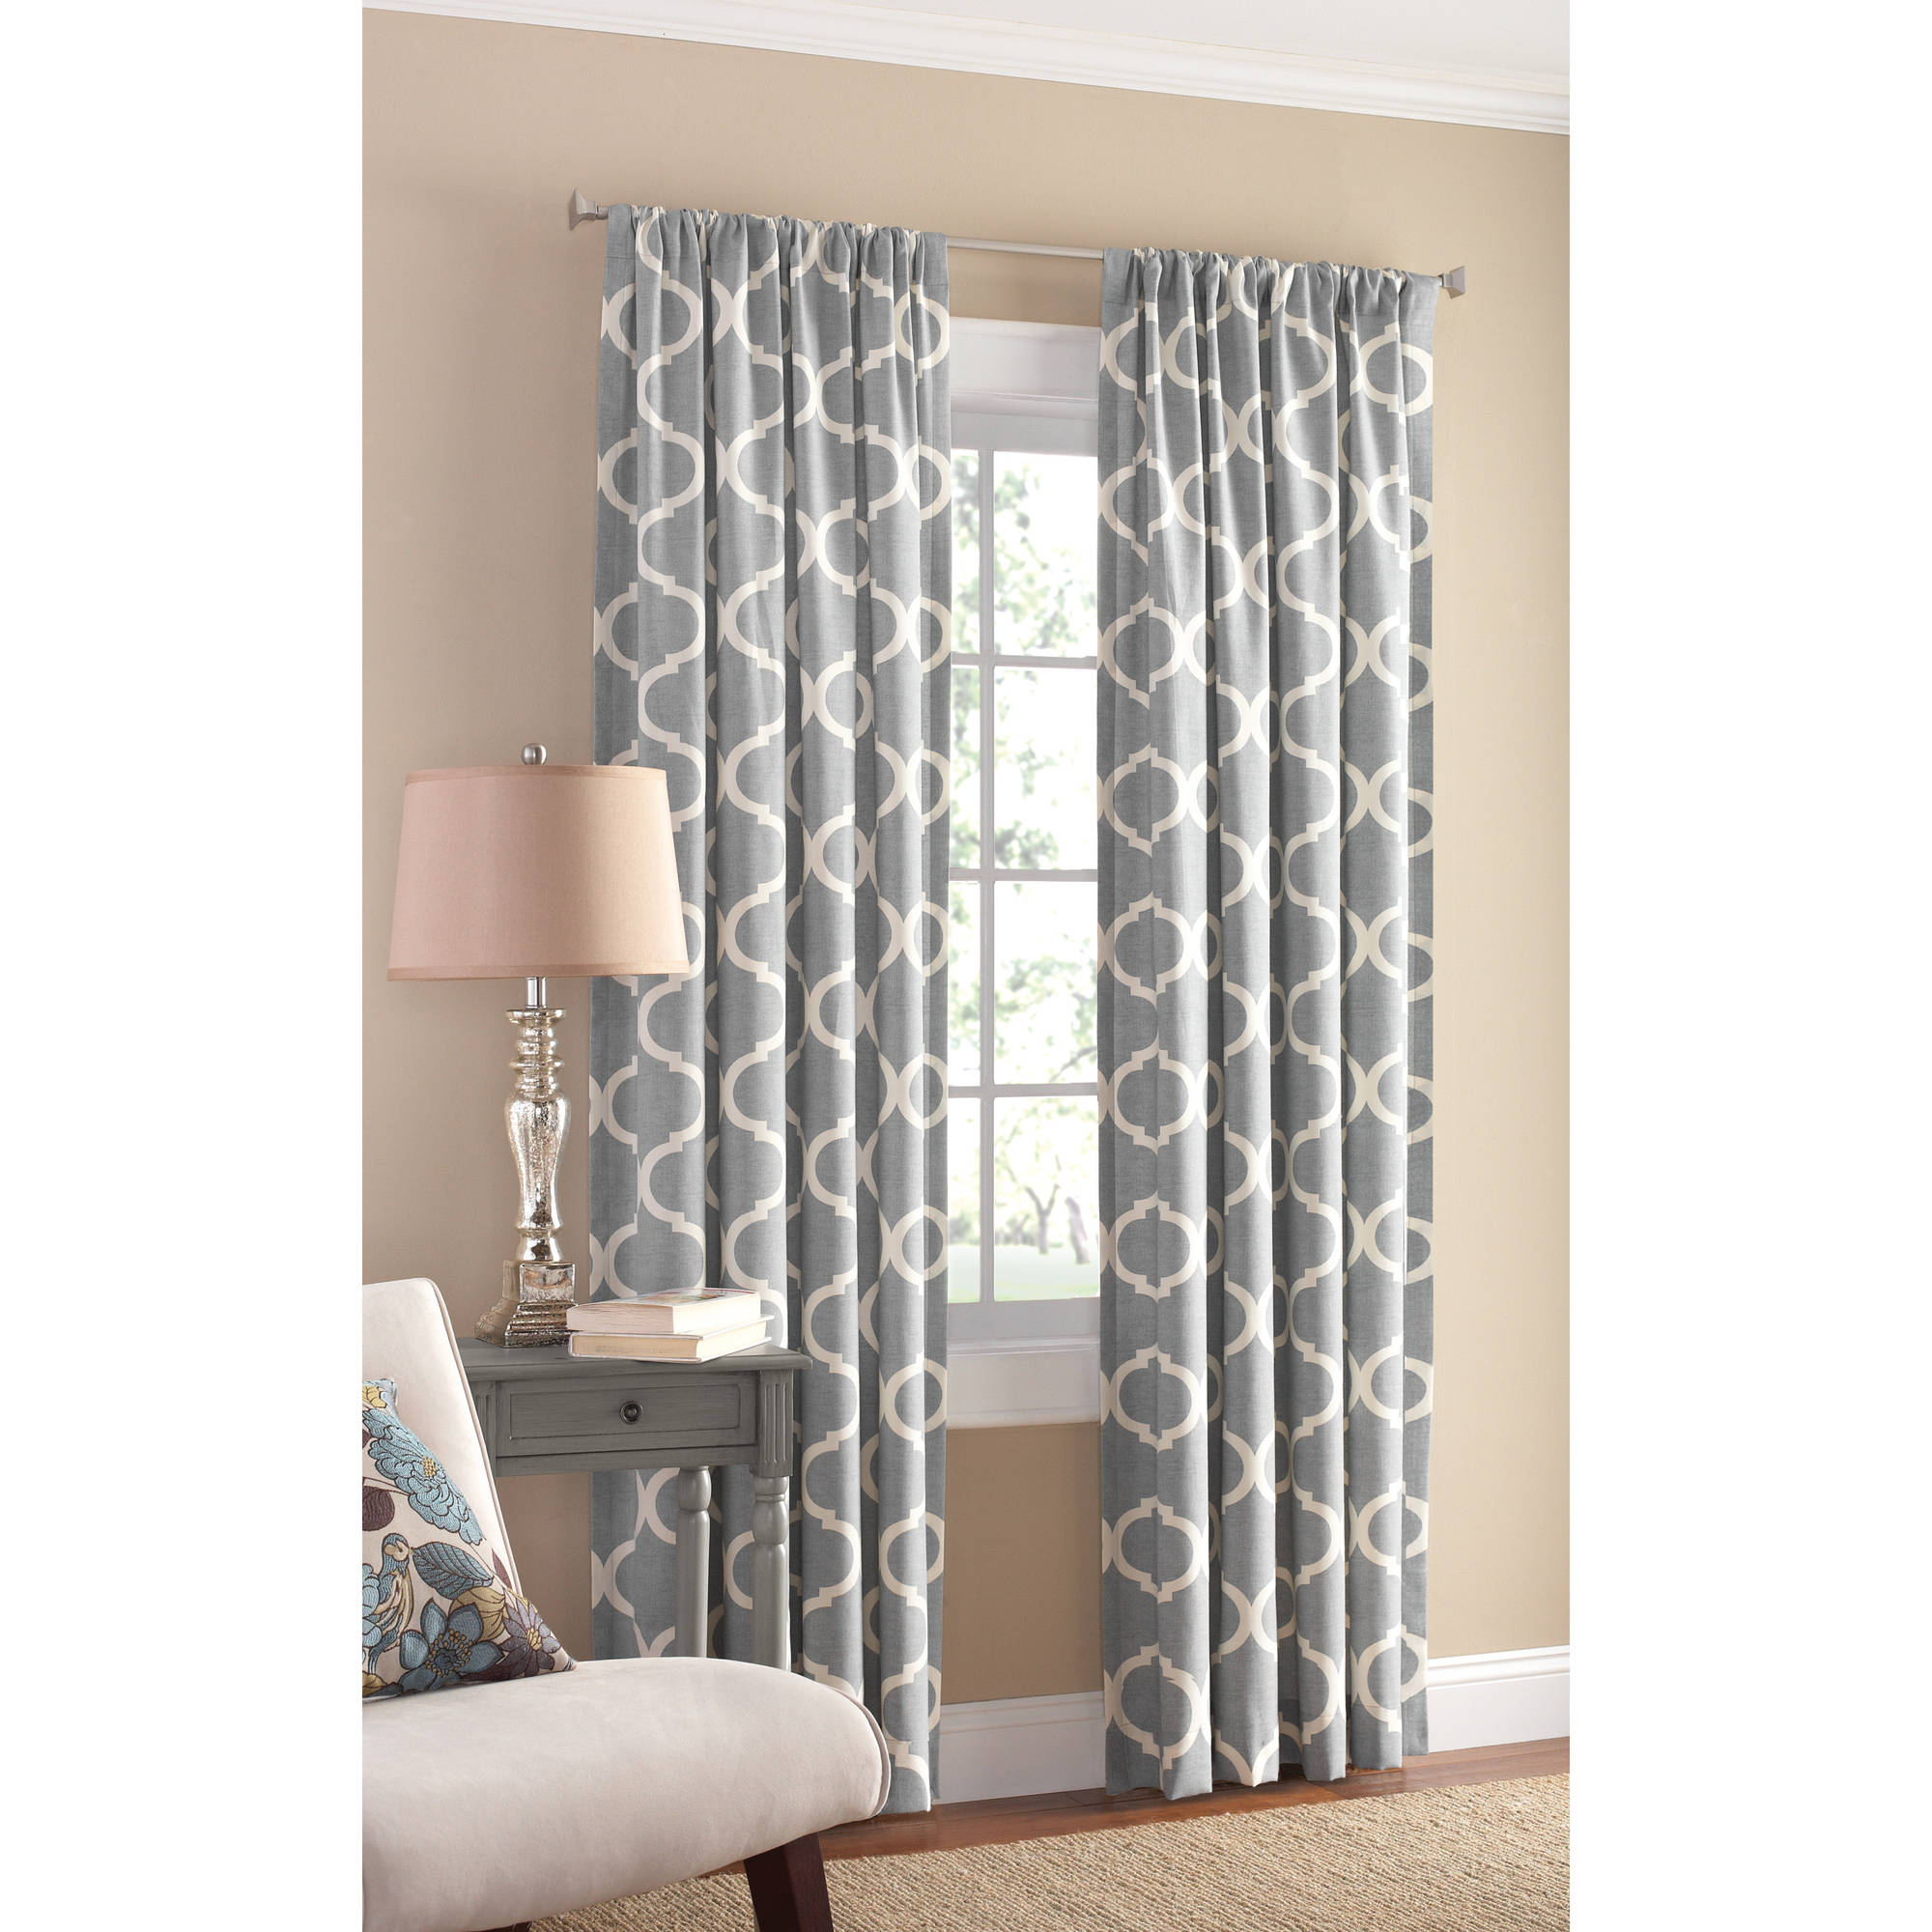 Faux Suede Blackout Curtains Bon Ton Curtains And Drapes